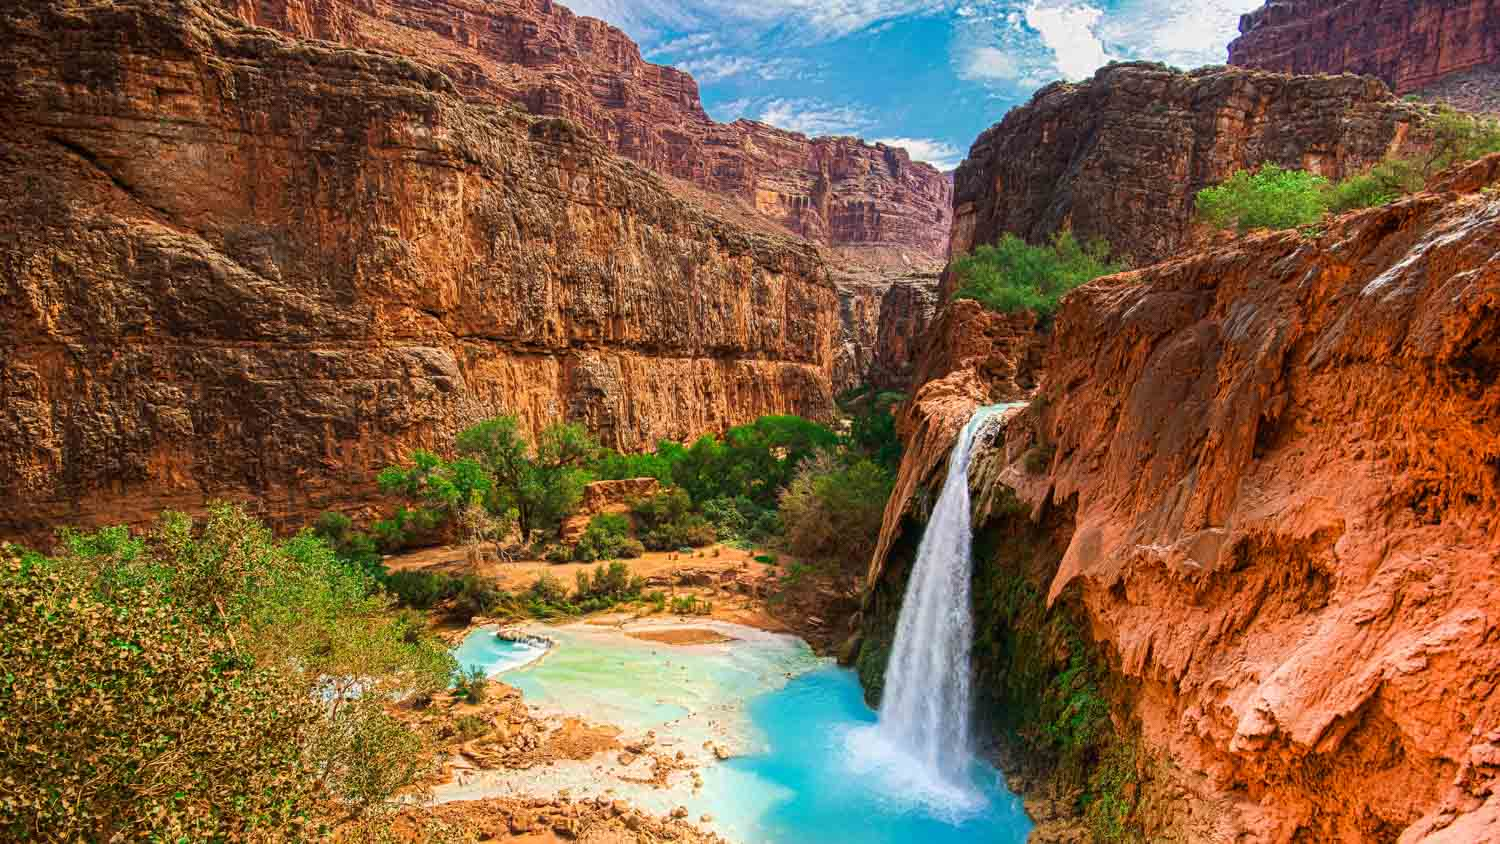 Canyon wallpapers Earth HQ Canyon pictures 4K Wallpapers 2019 1500x844